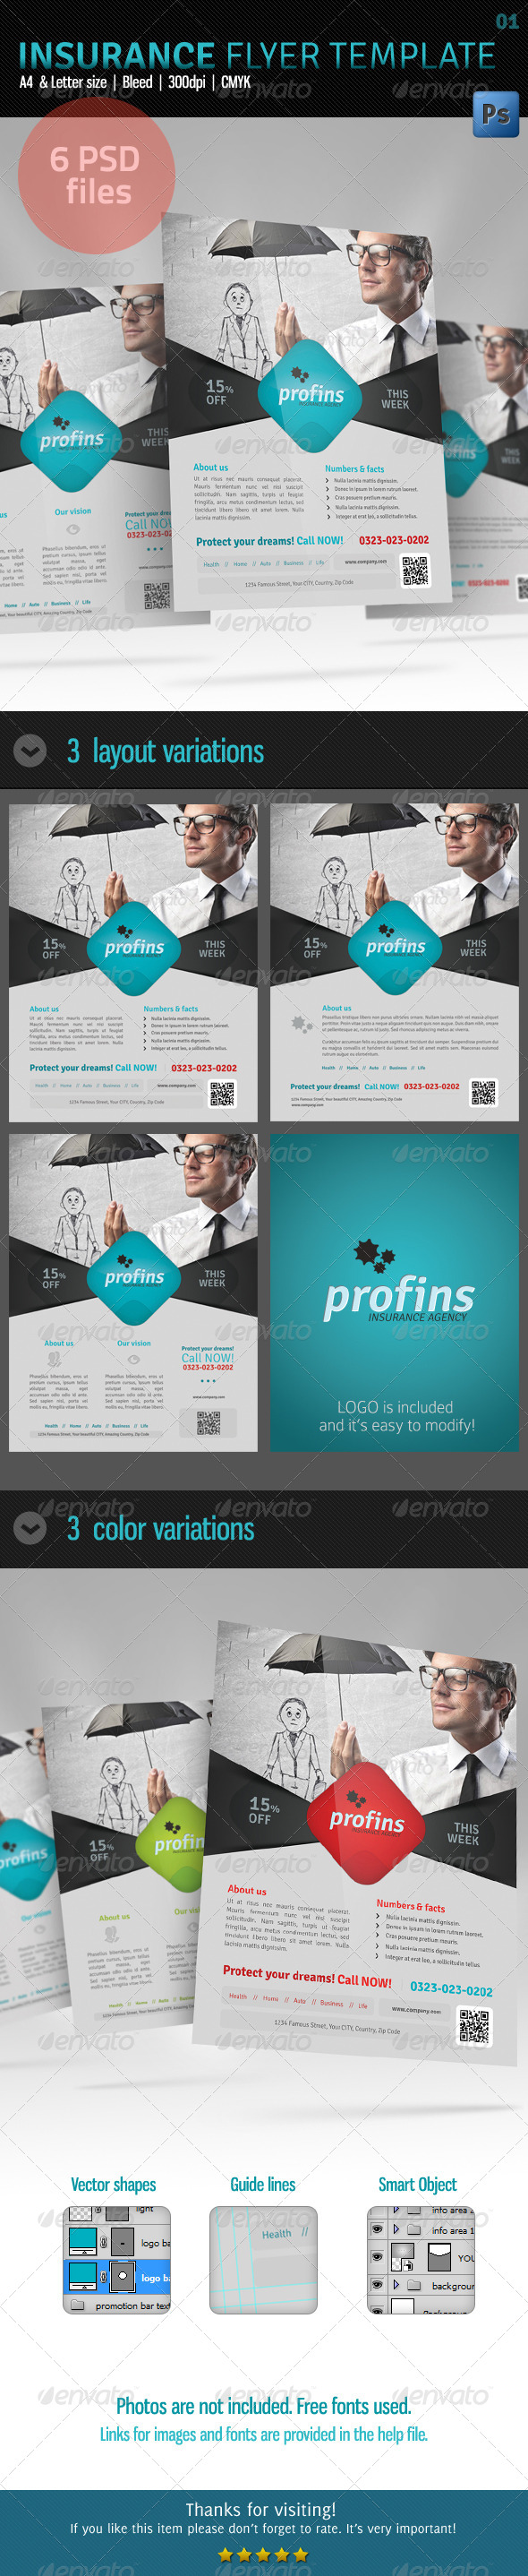 GraphicRiver Insurance Flyer Template 01 5712652